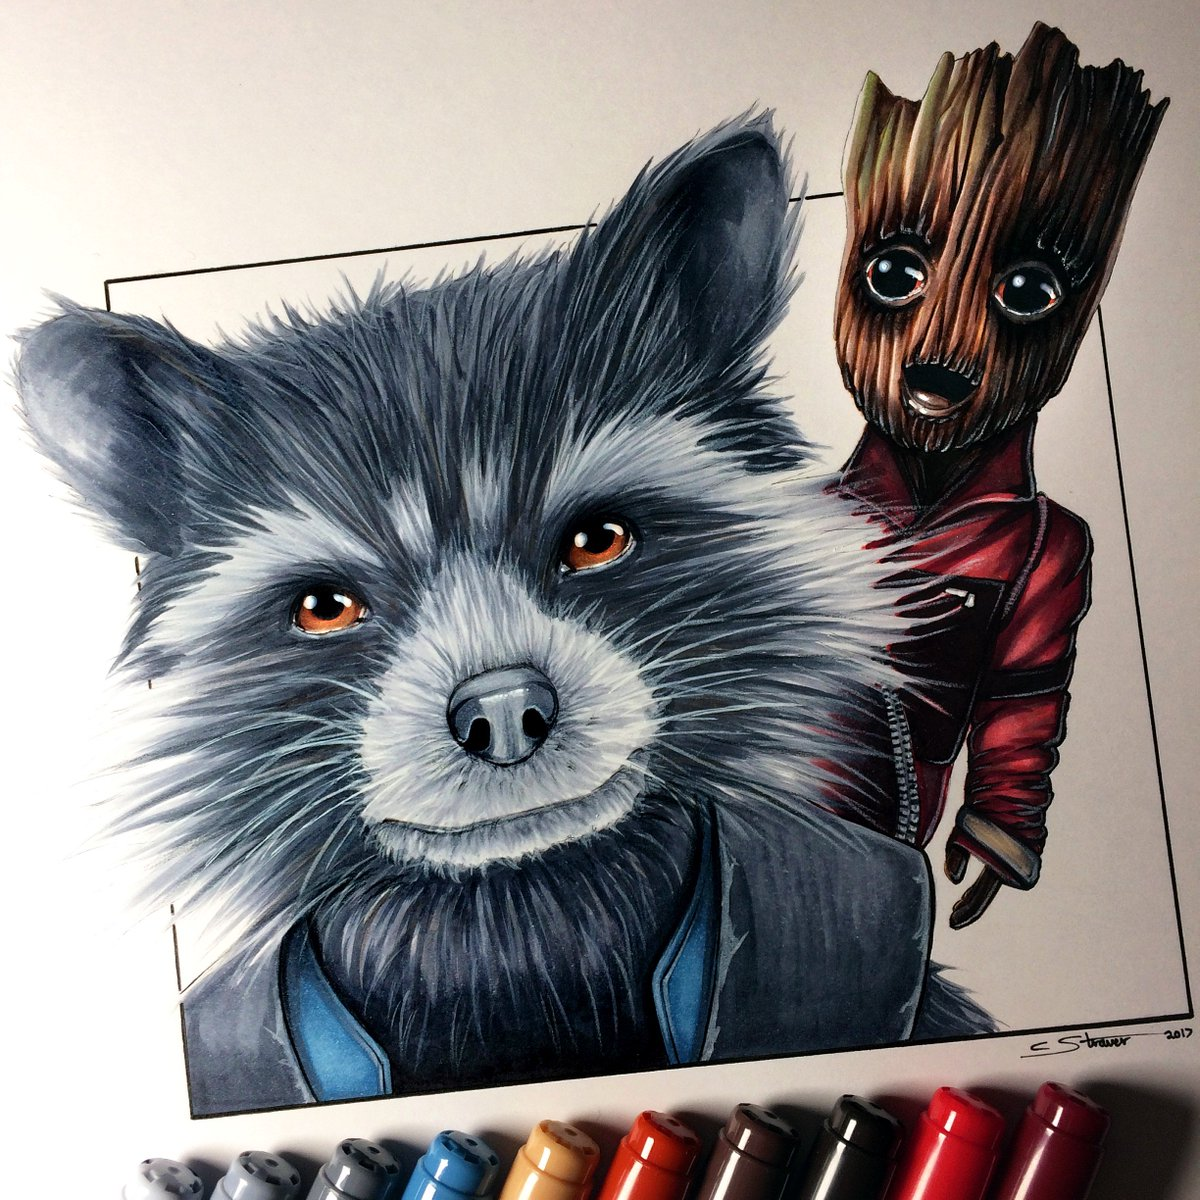 Christopher Straver On Twitter Here S My Drawing Of Rocket Raccoon